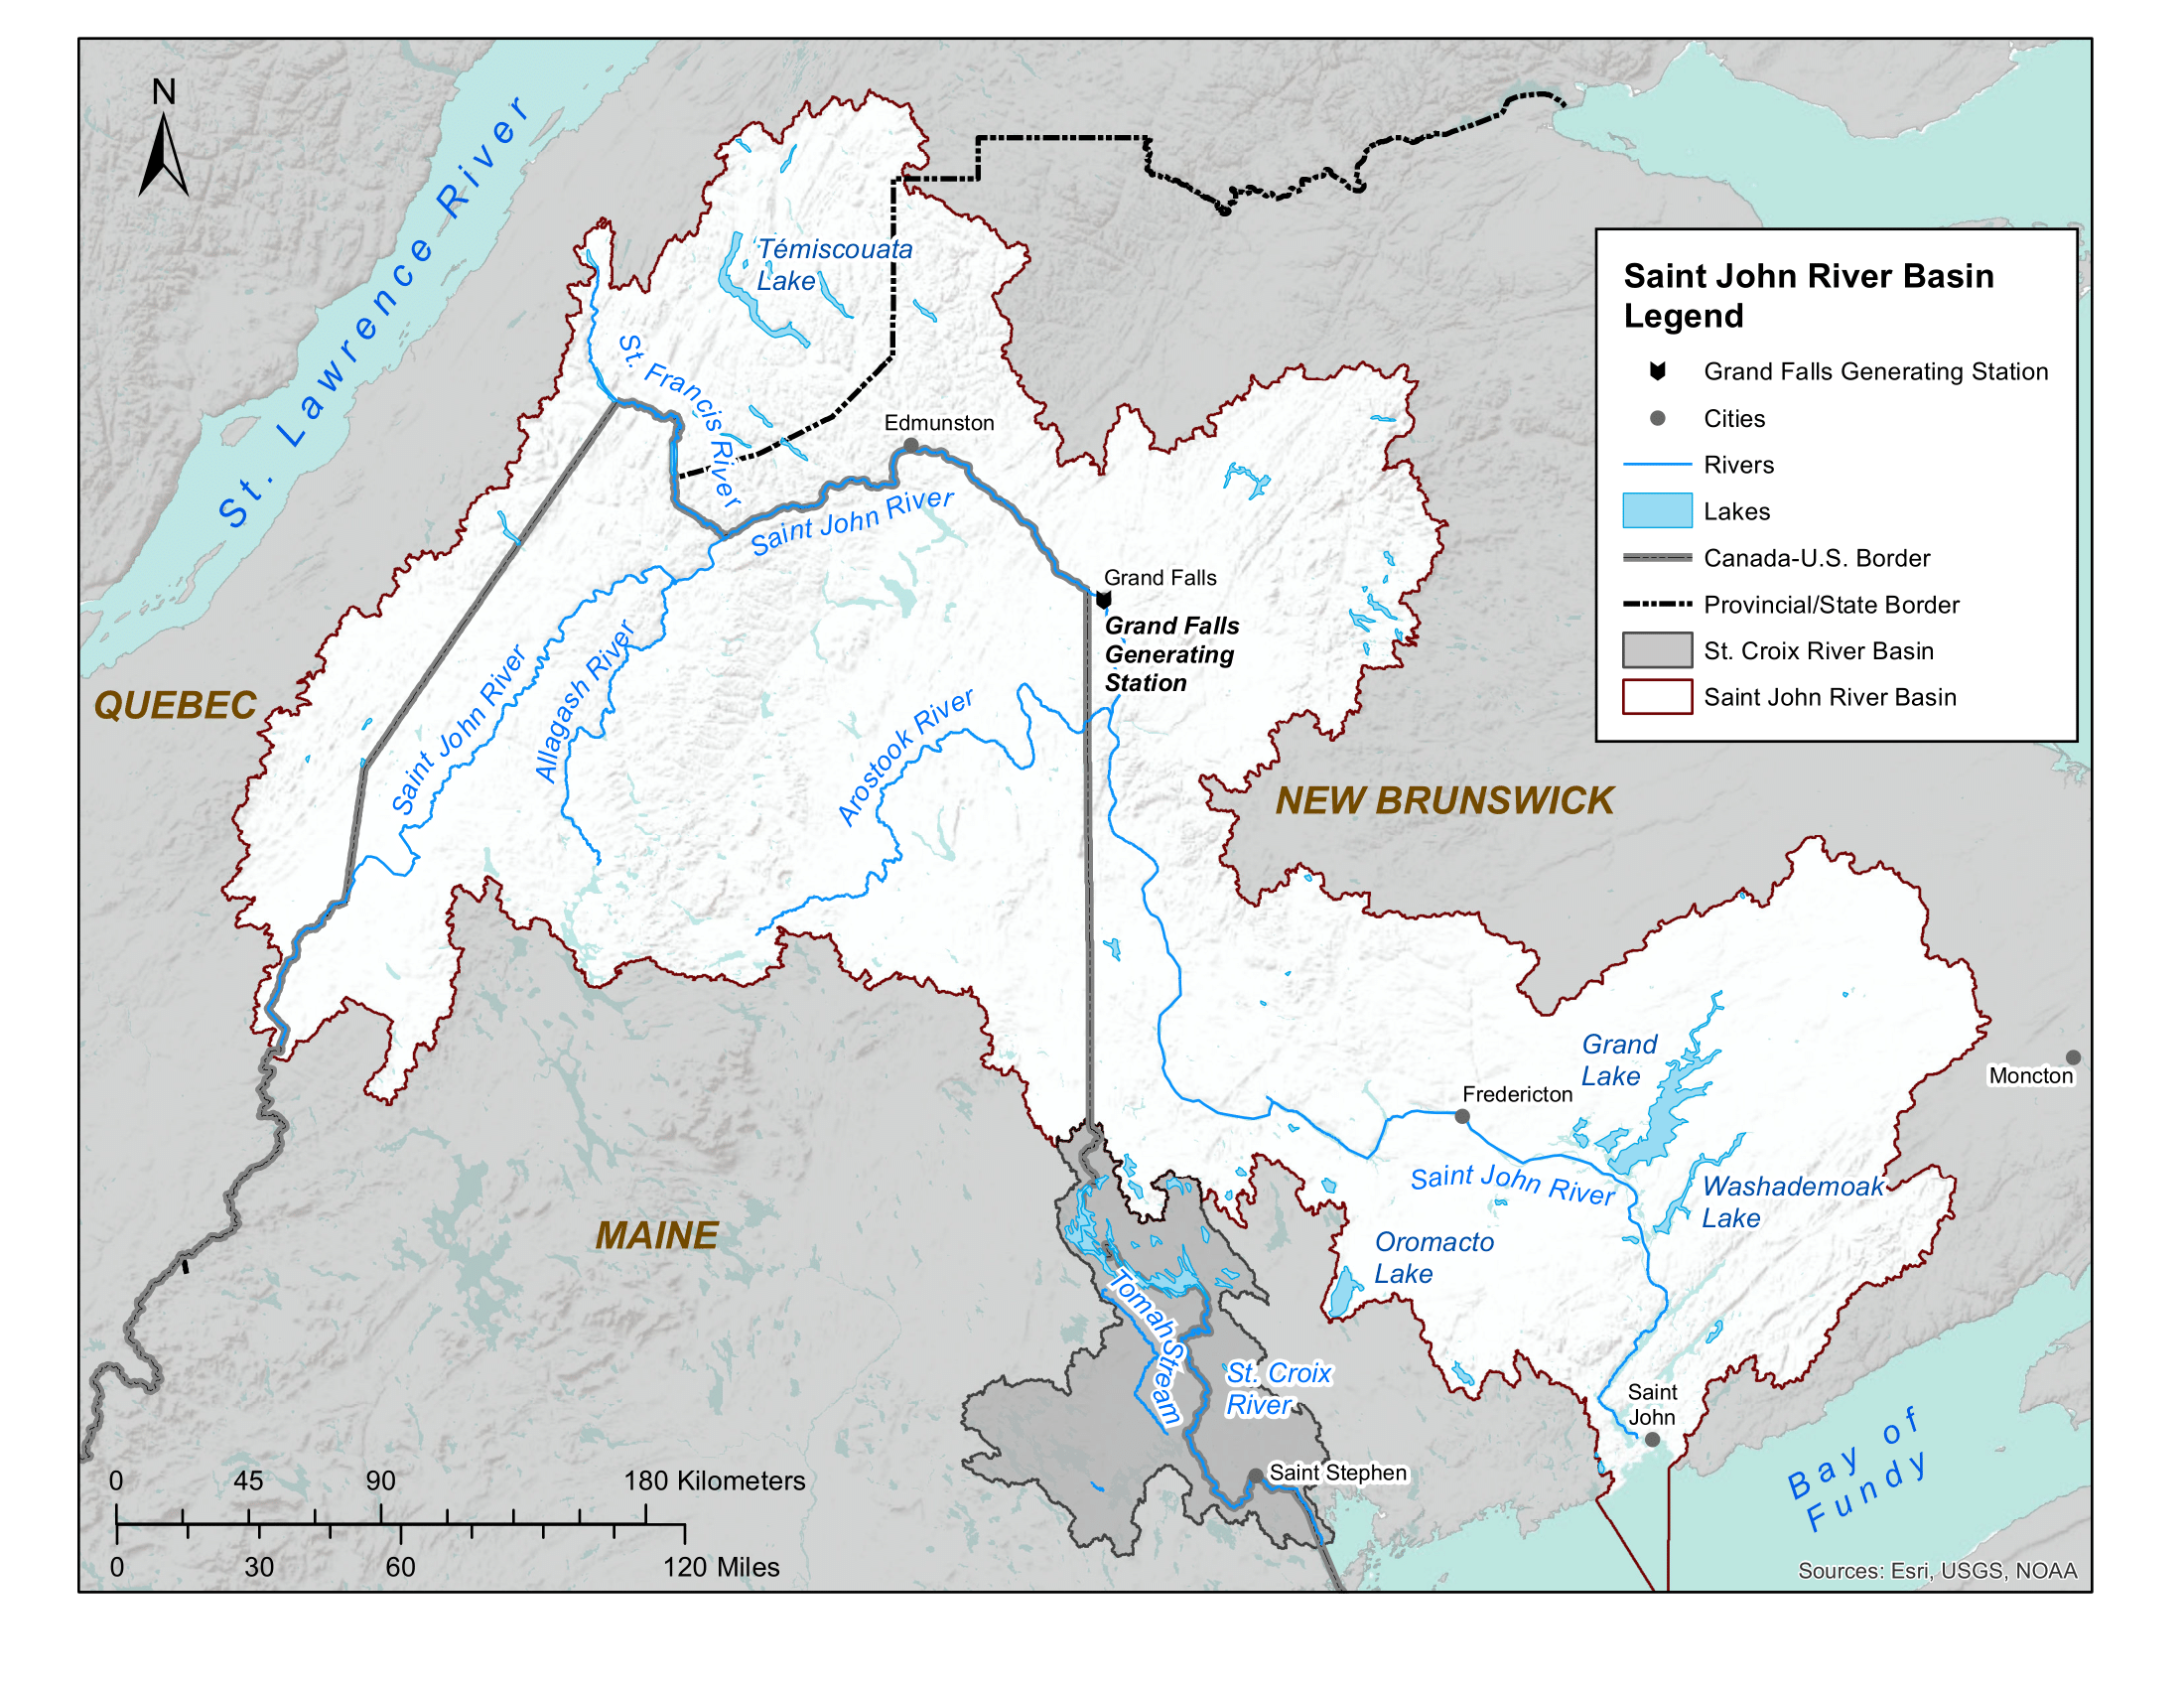 Map of Saint John River Basin